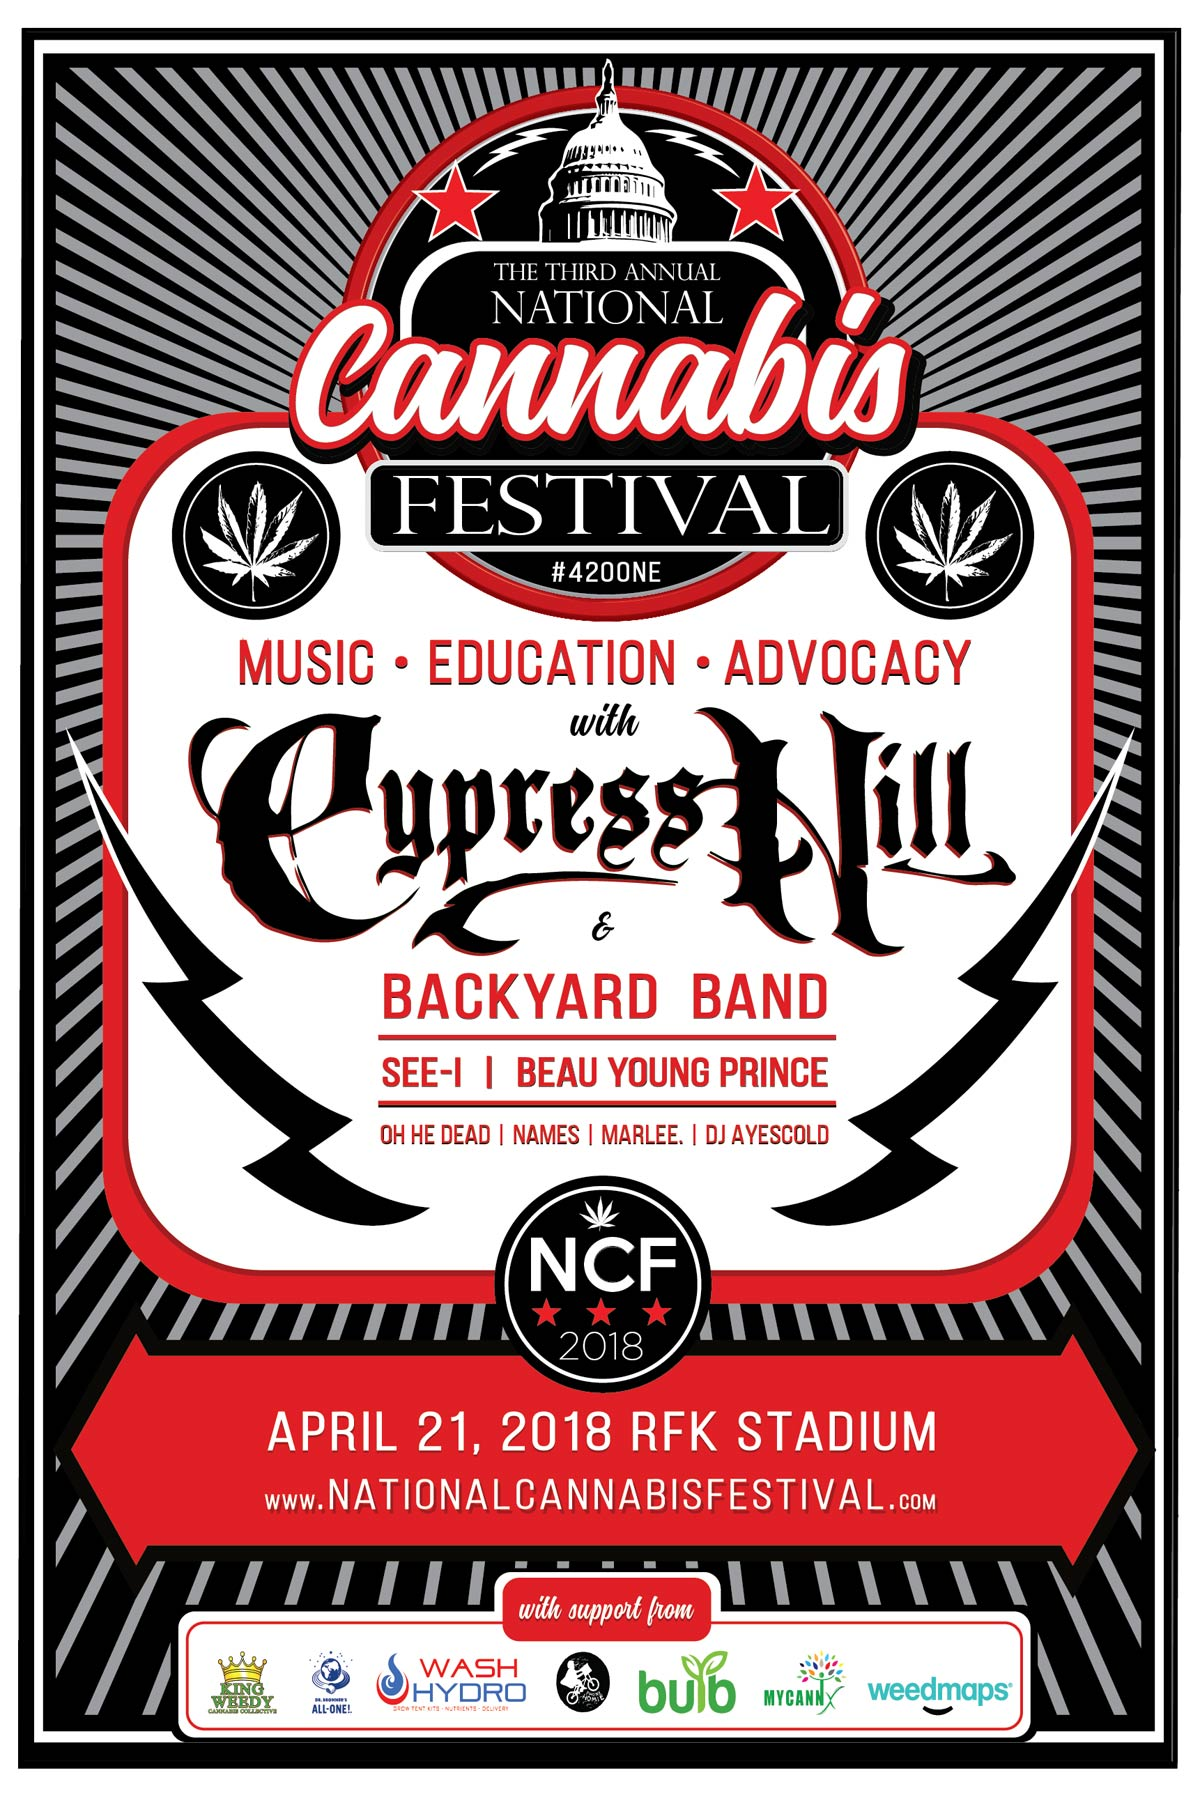 WIN FREE TICKETS TO NCF! | Gentleman Toker